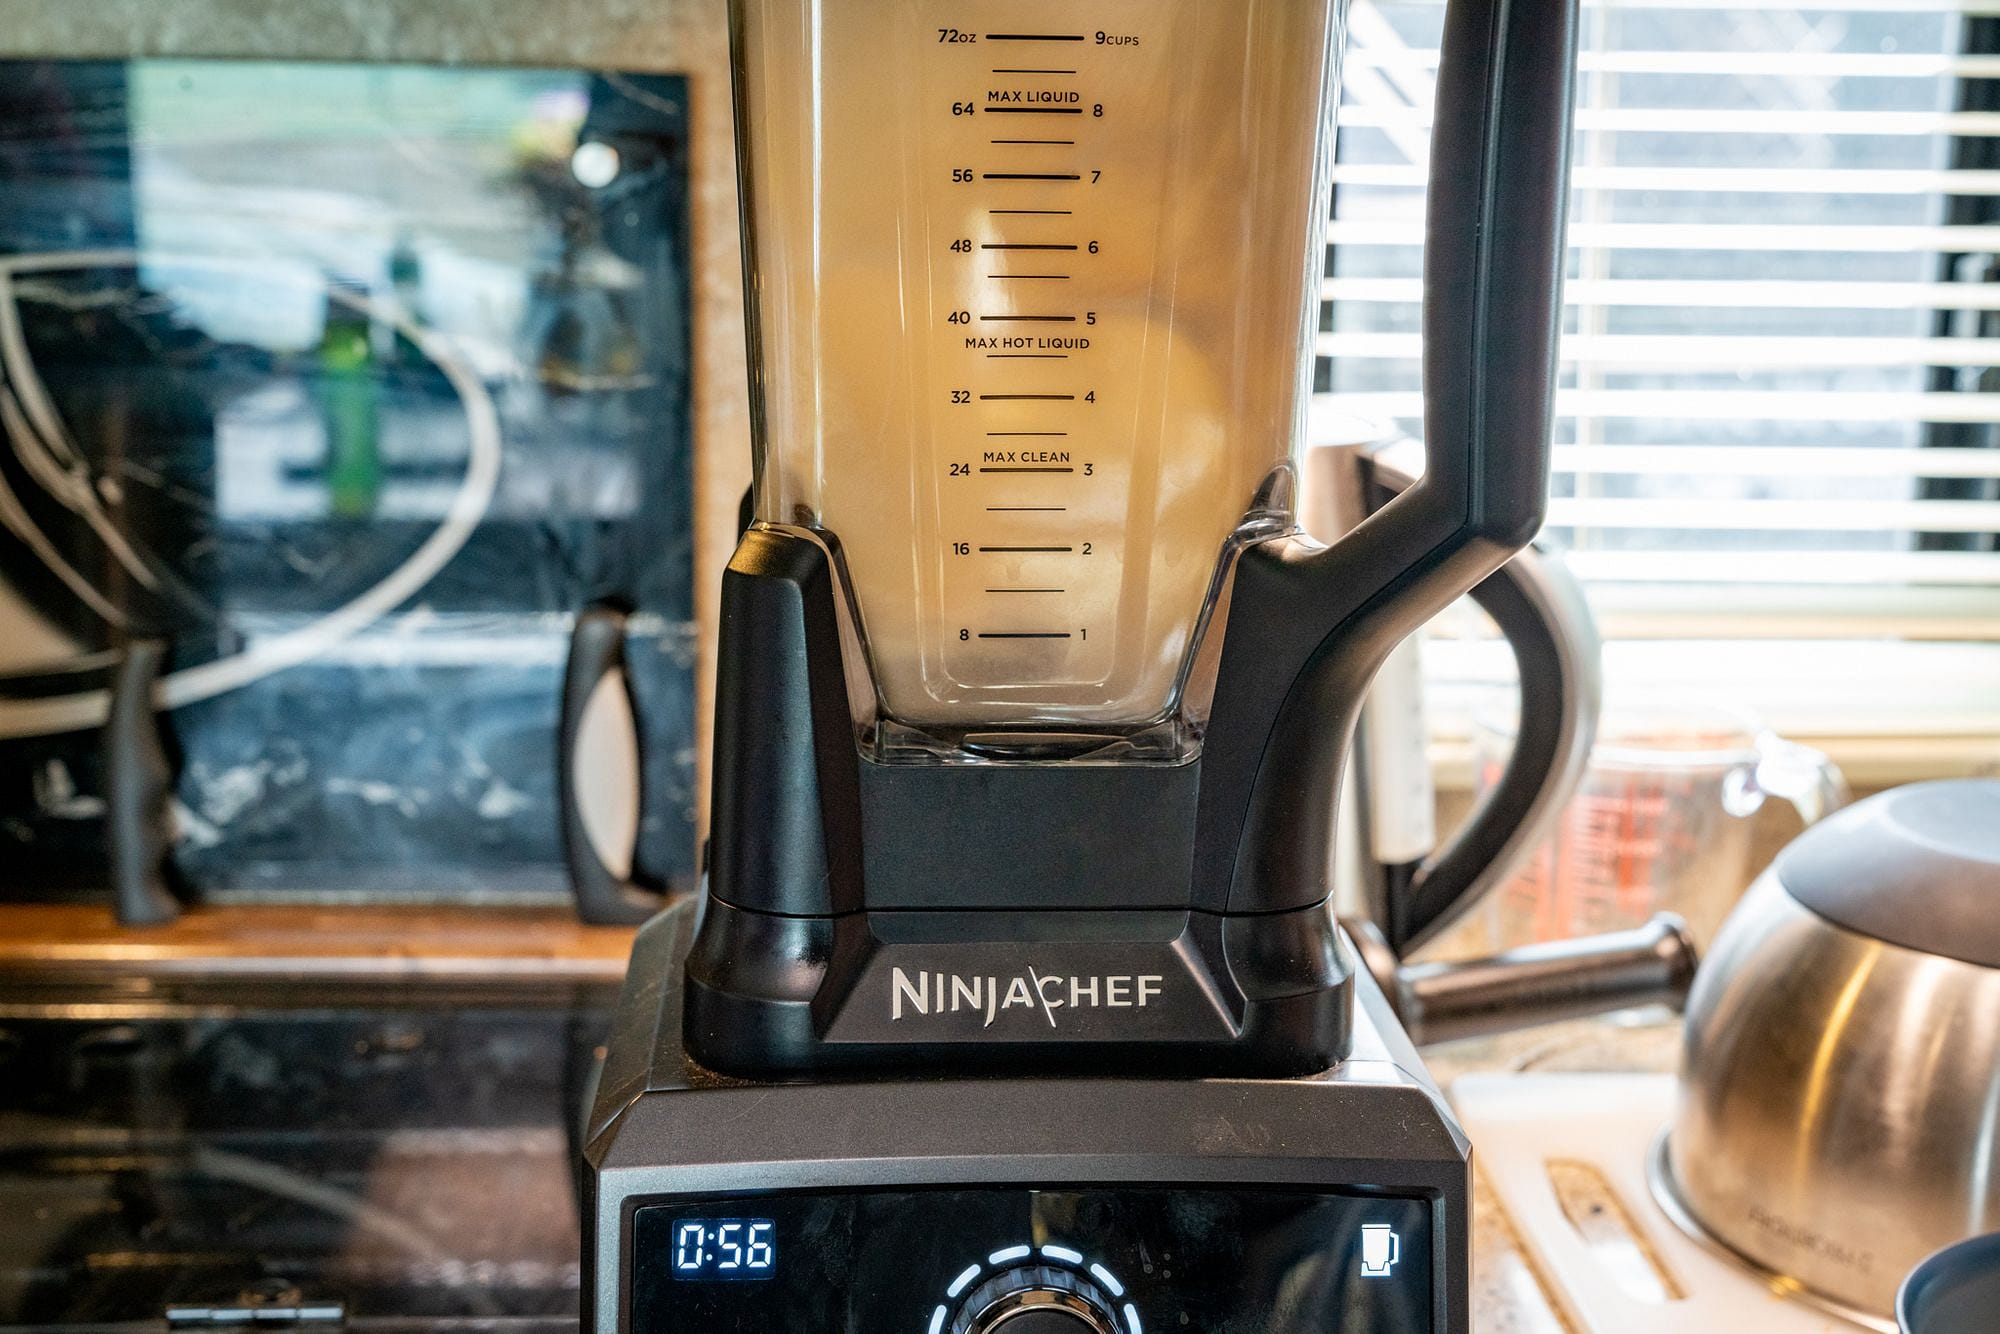 Ninja Chef Blender CT800